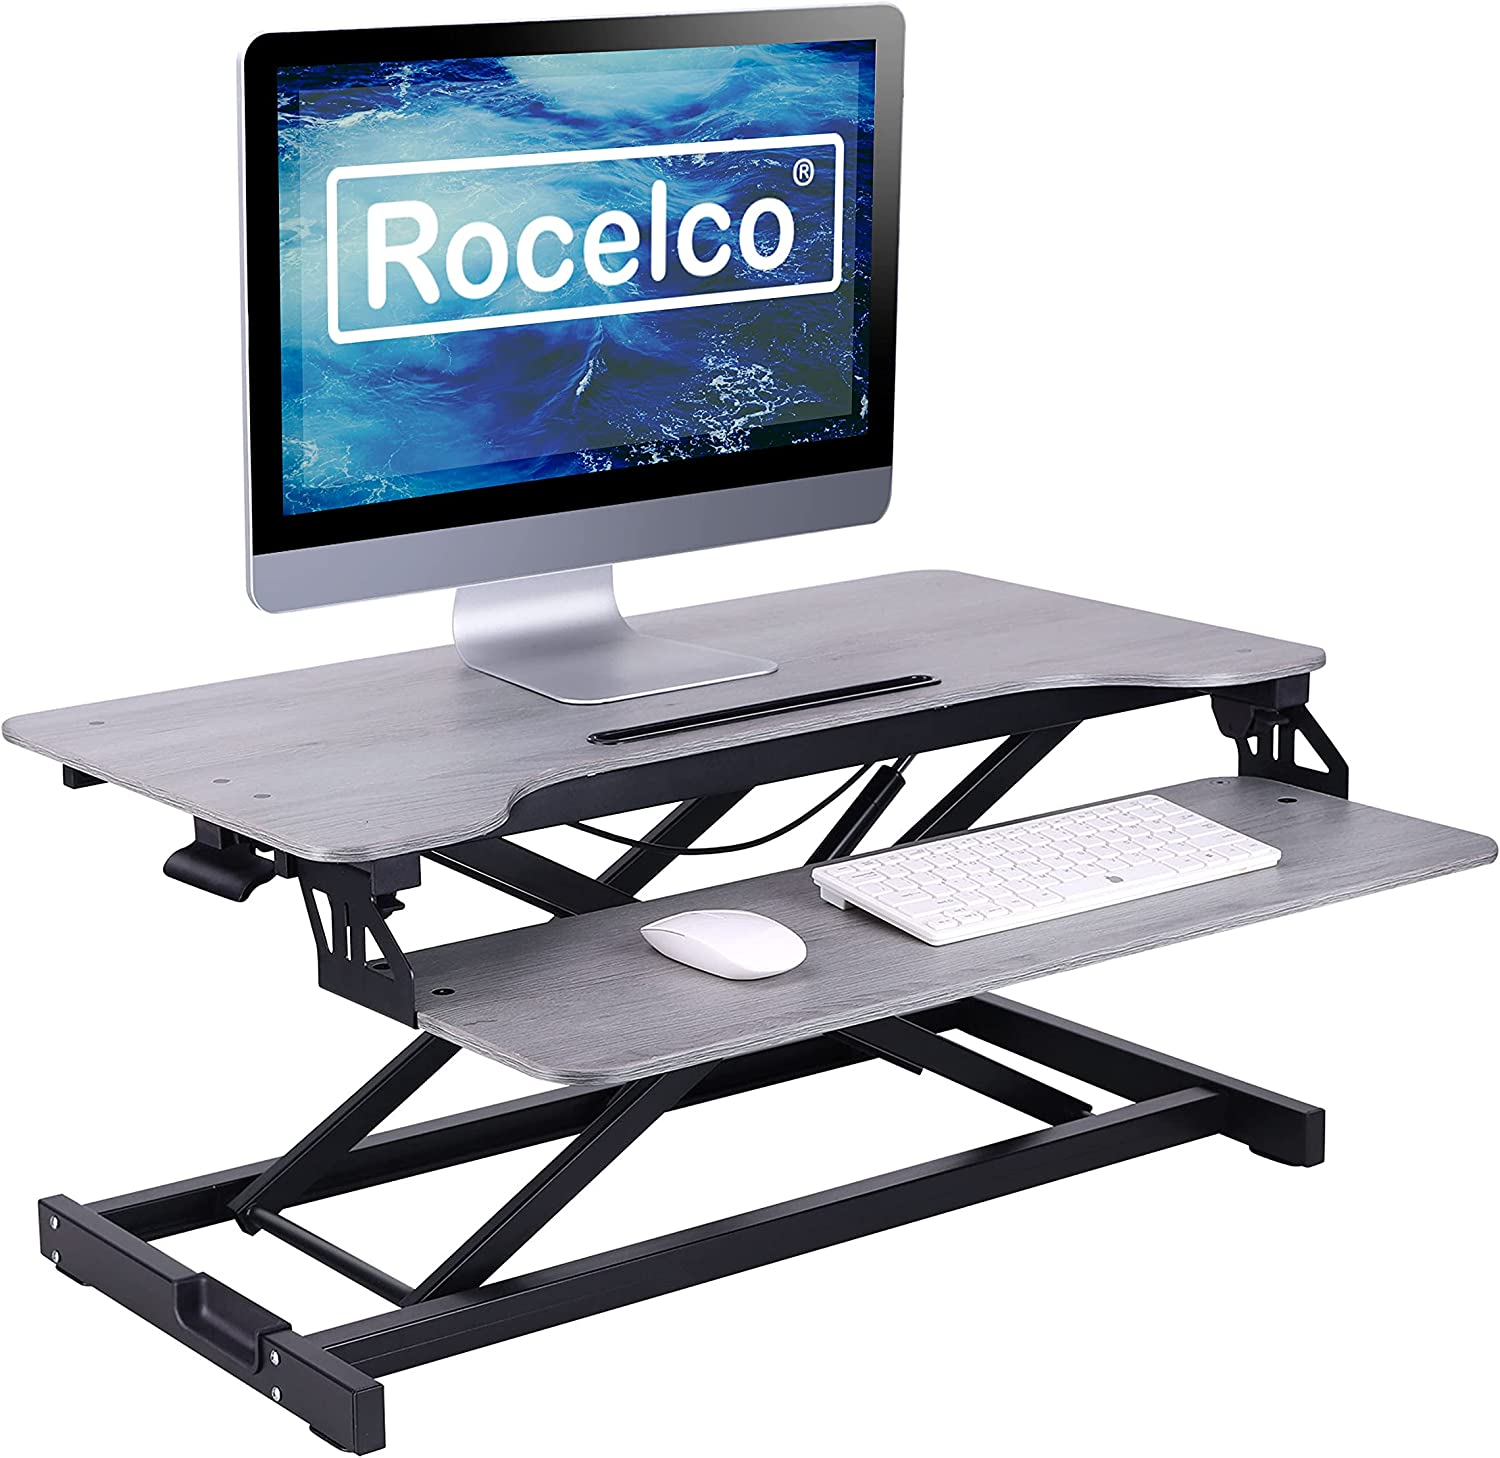 Rocelco Standing Desk Converter 31.5 Inch Sit Stand Up Dual Monitor Tabletop Riser with Tablet Mount, Height Adjustable Home Office Workstation - Deep Keyboard Tray for Laptop Mouse - Gray (R VADRG)